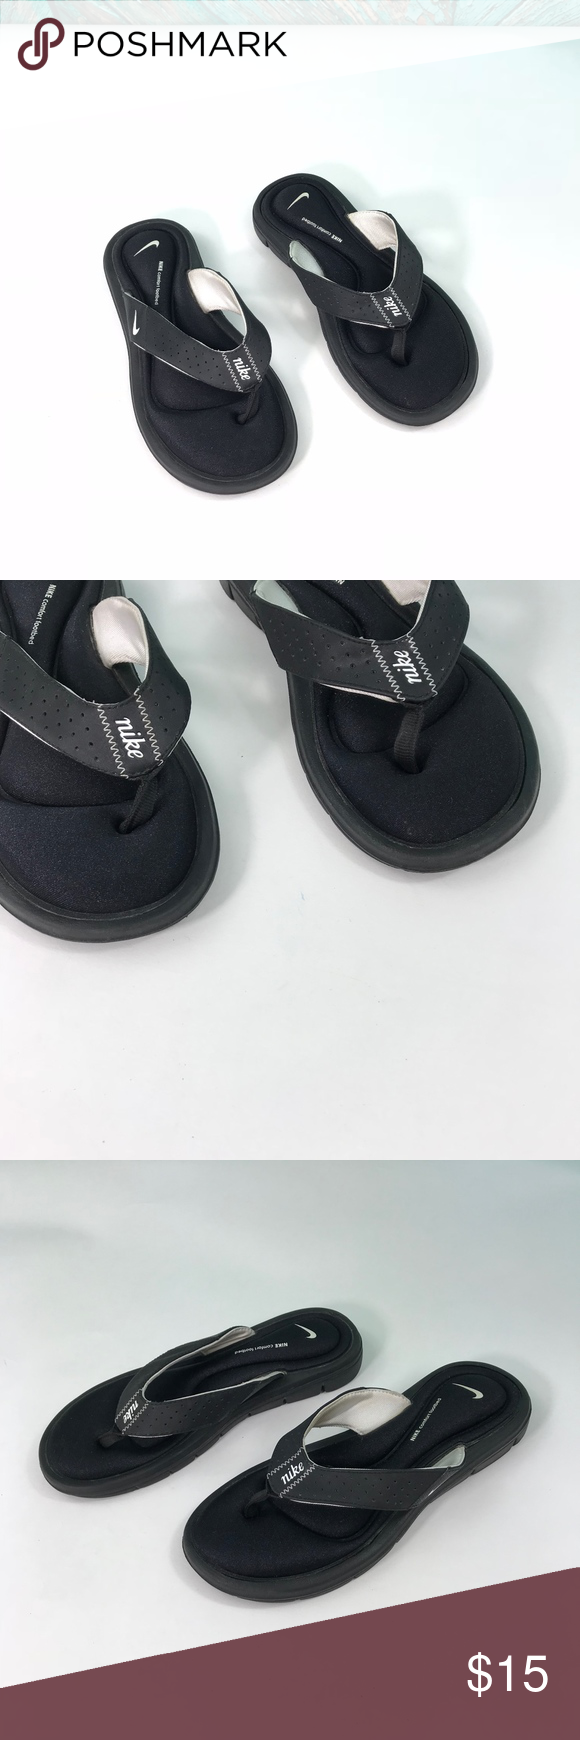 40bcbf03dc39 Nike Womens Thong Comfort Footbed Sandals 6 Nike Womens Thong Comfort  Footbed Sandals Flip Flops 6